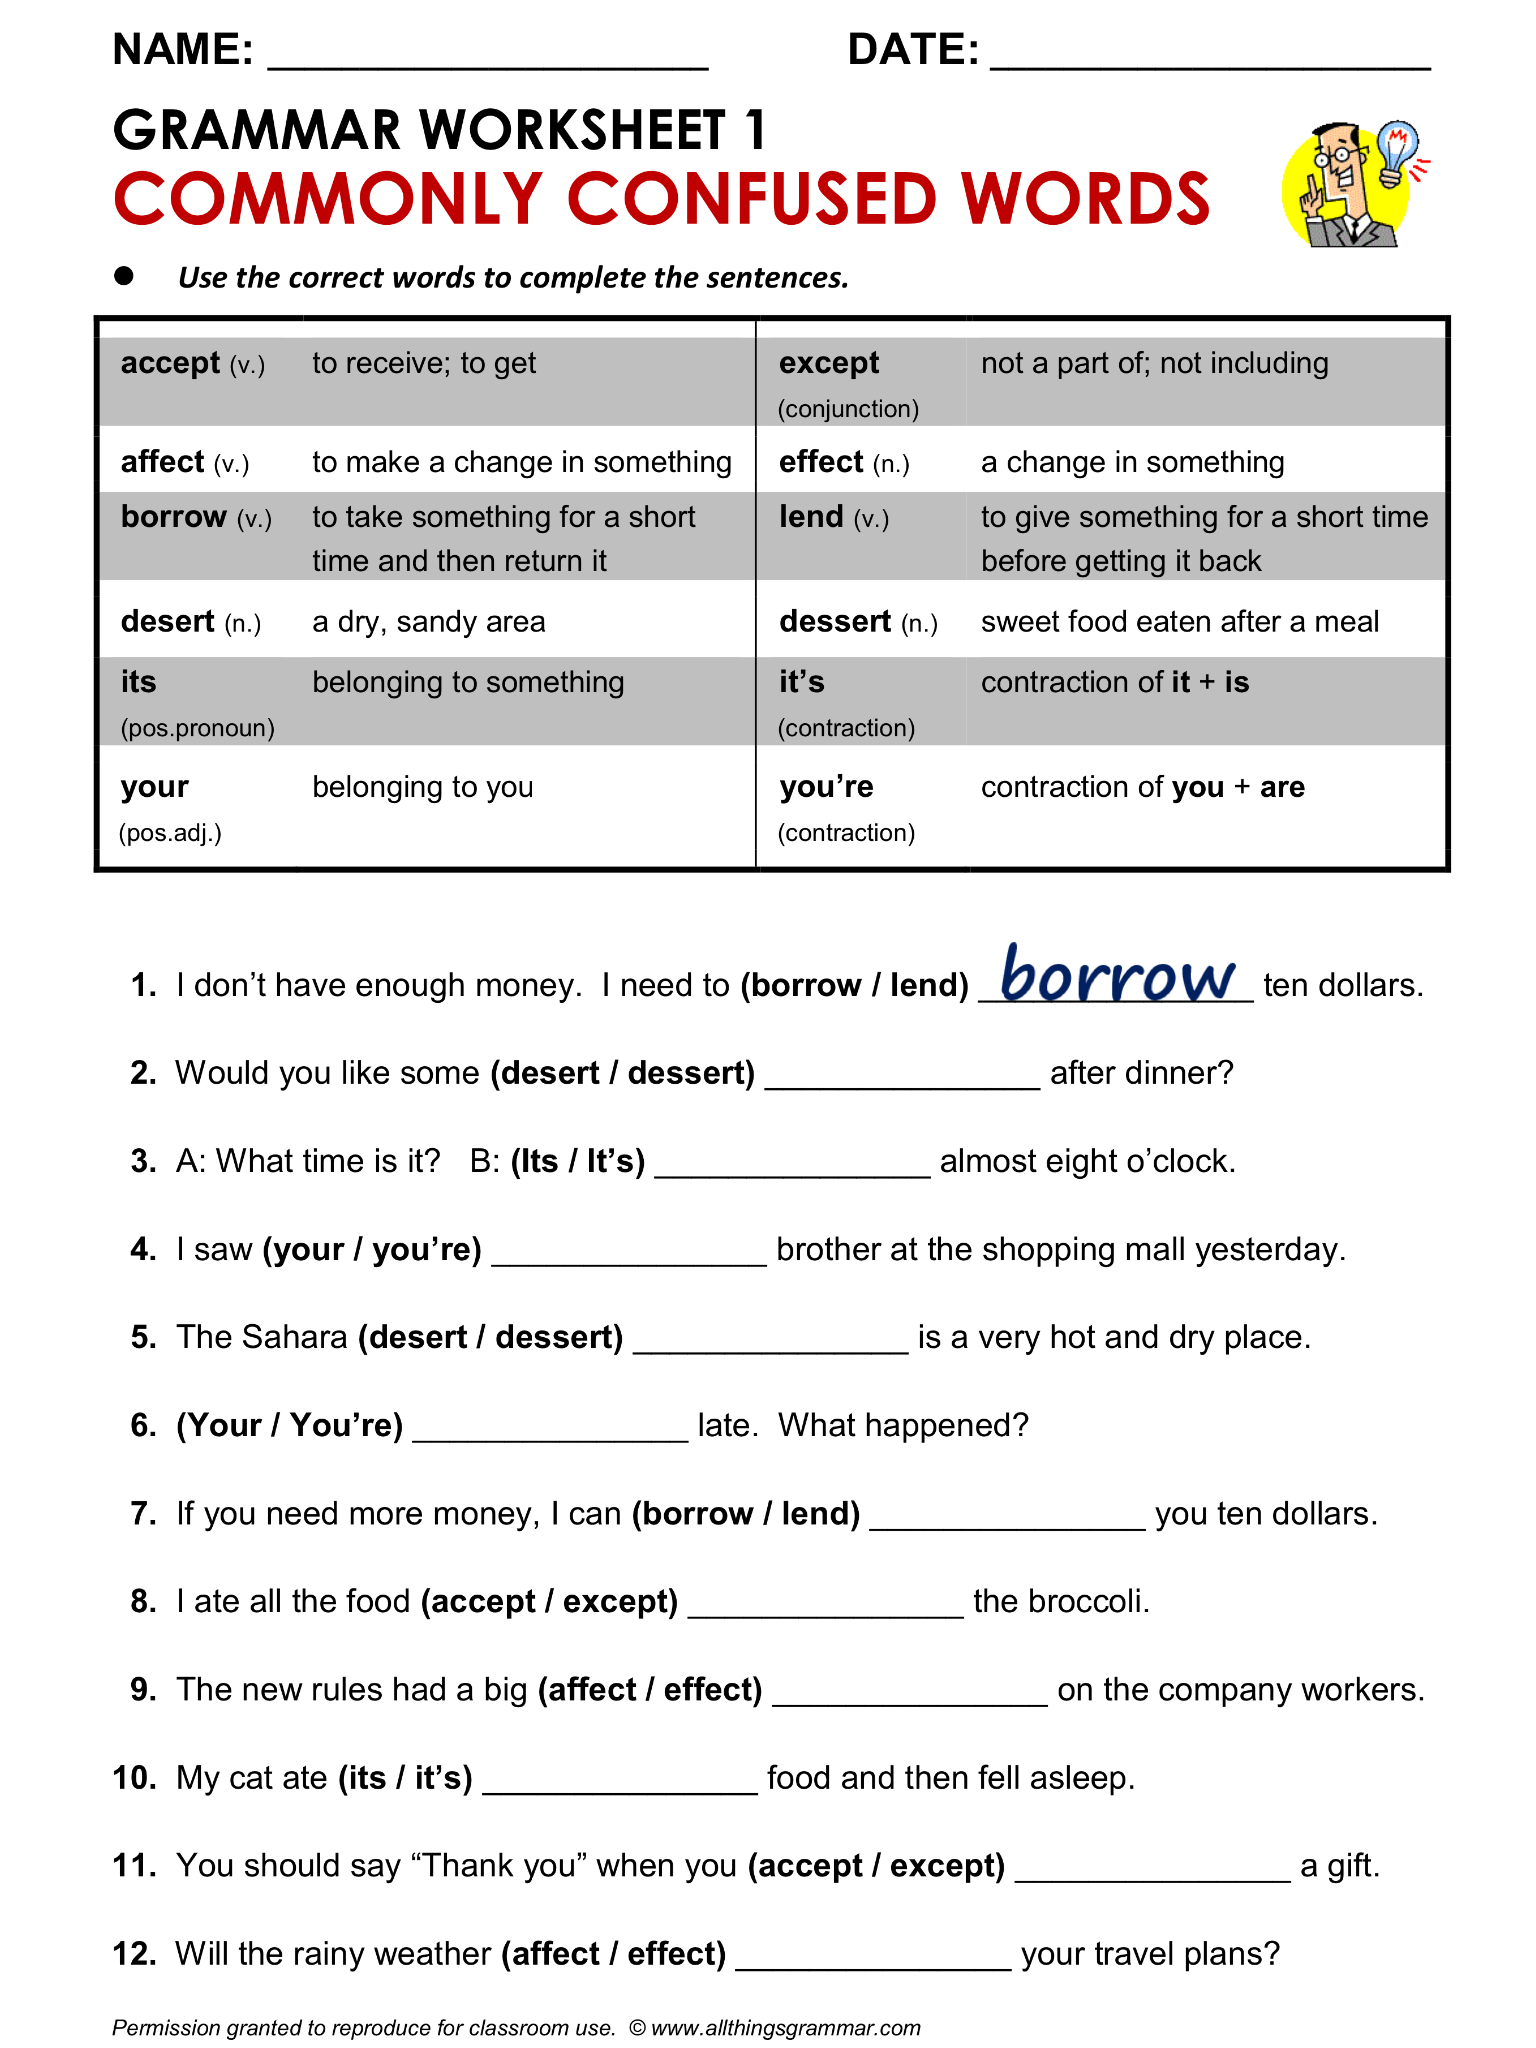 worksheet Commonly Confused Words Worksheet english grammar worksheet commonly confused words 1 httpwww allthingsgrammar